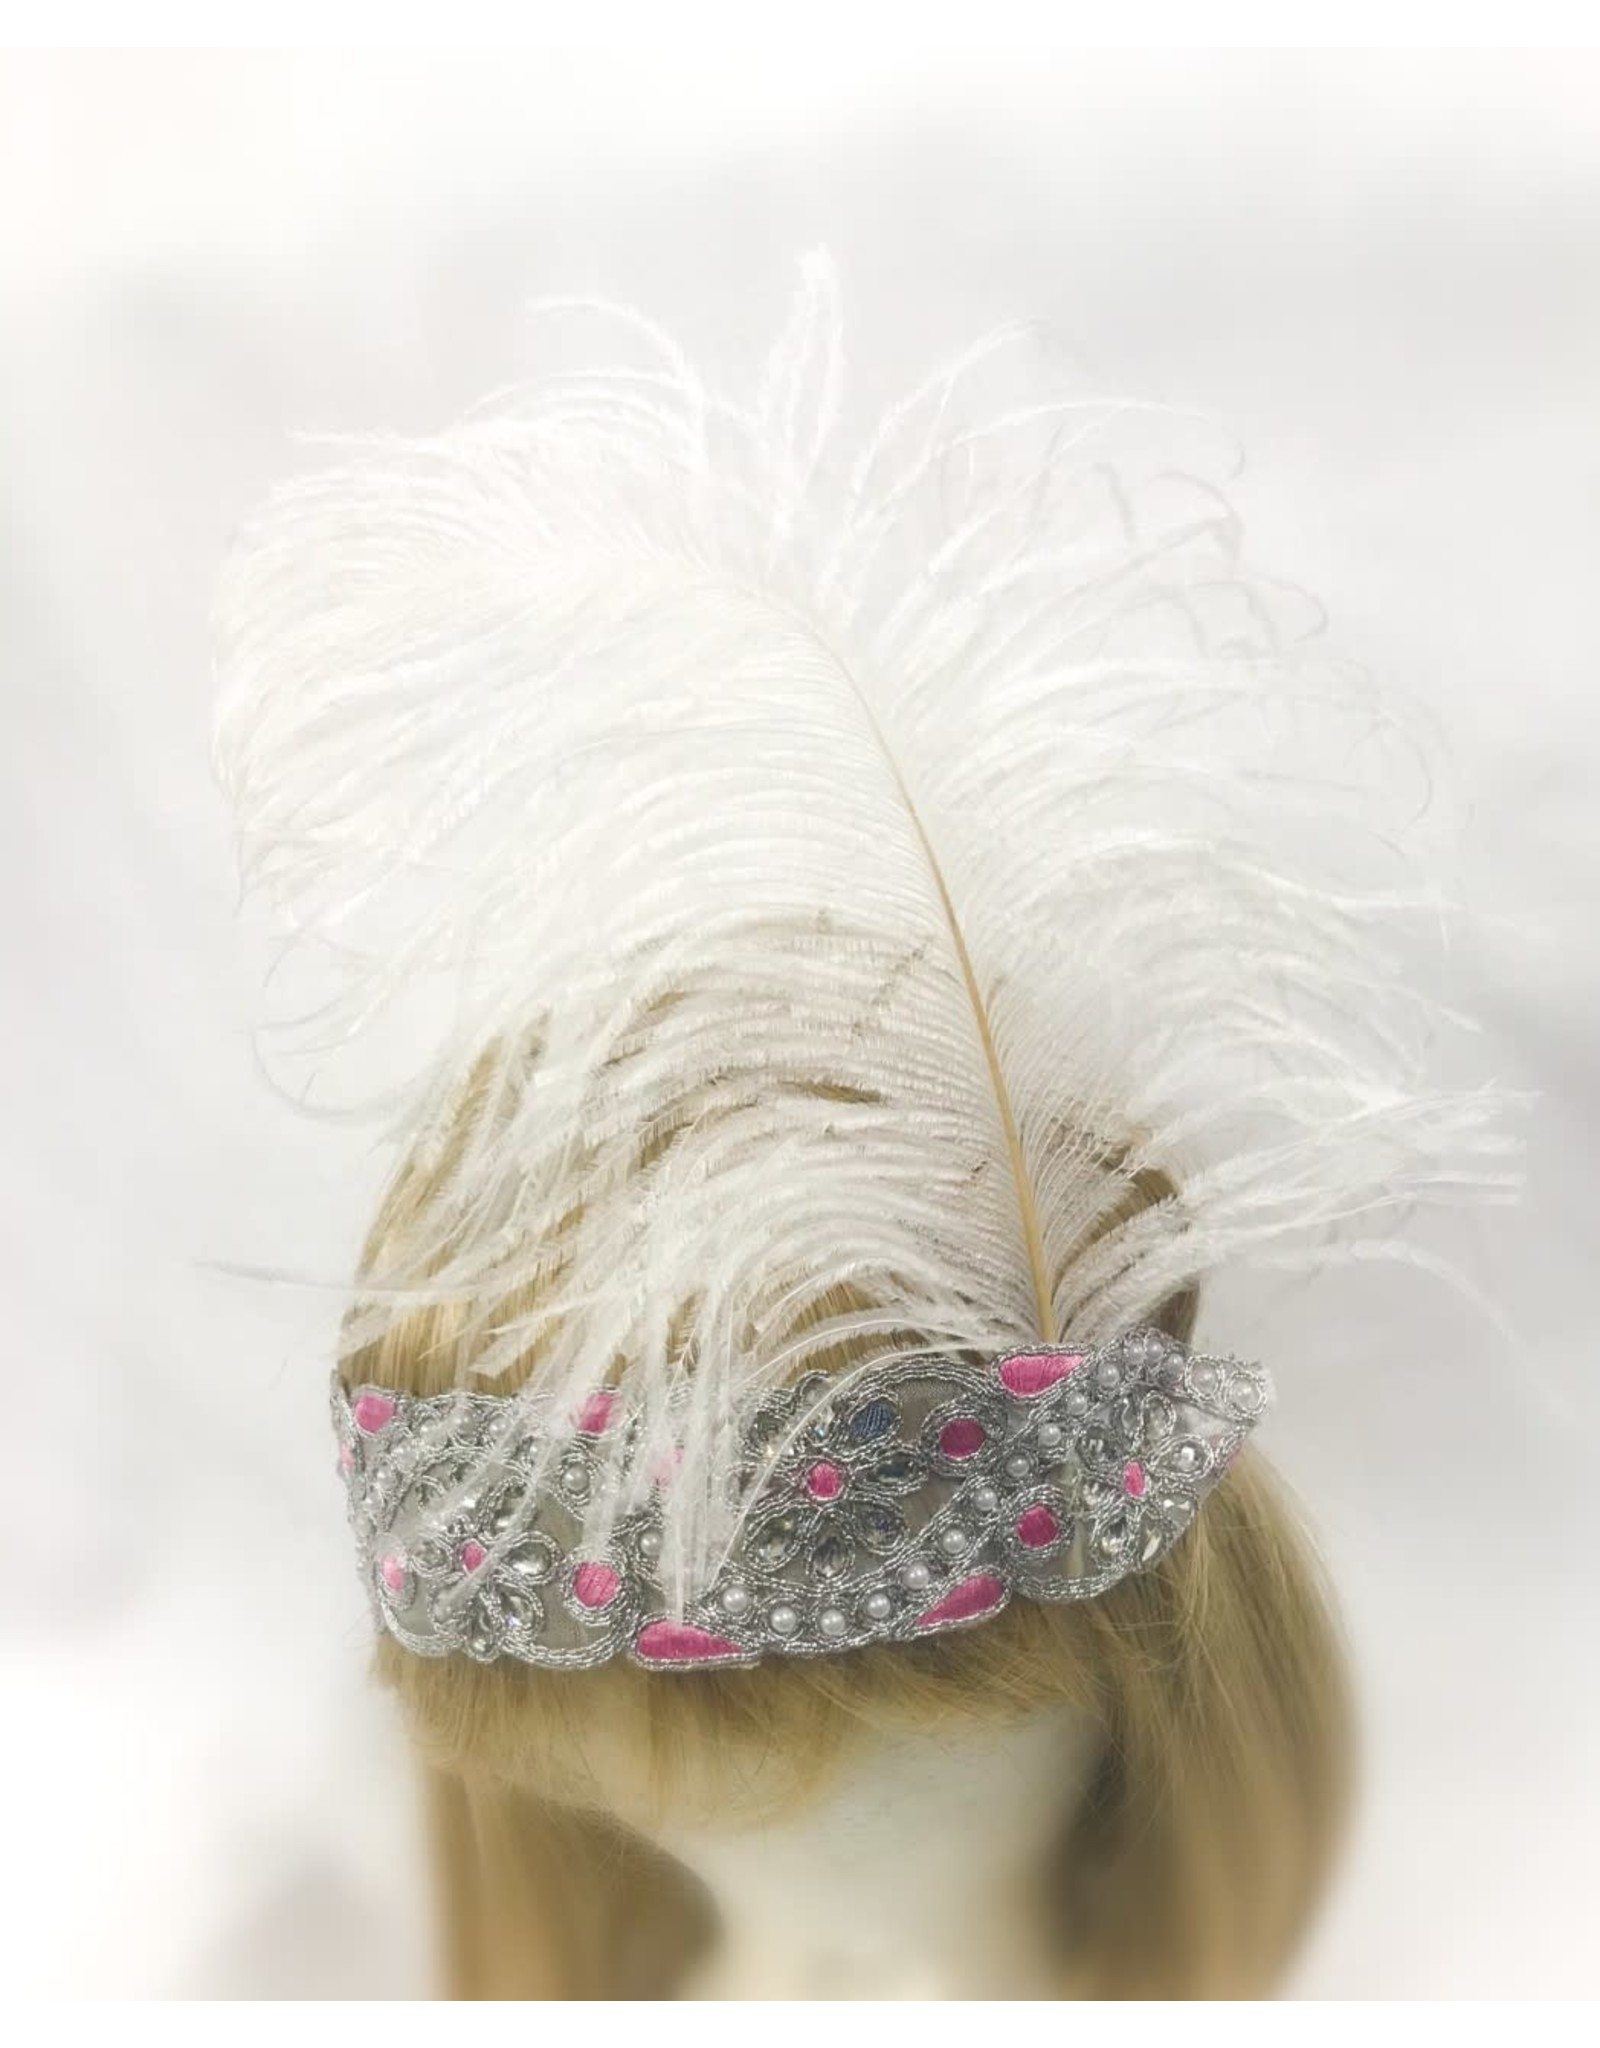 Karries Kostumes Pink and Silver Headband with Feather